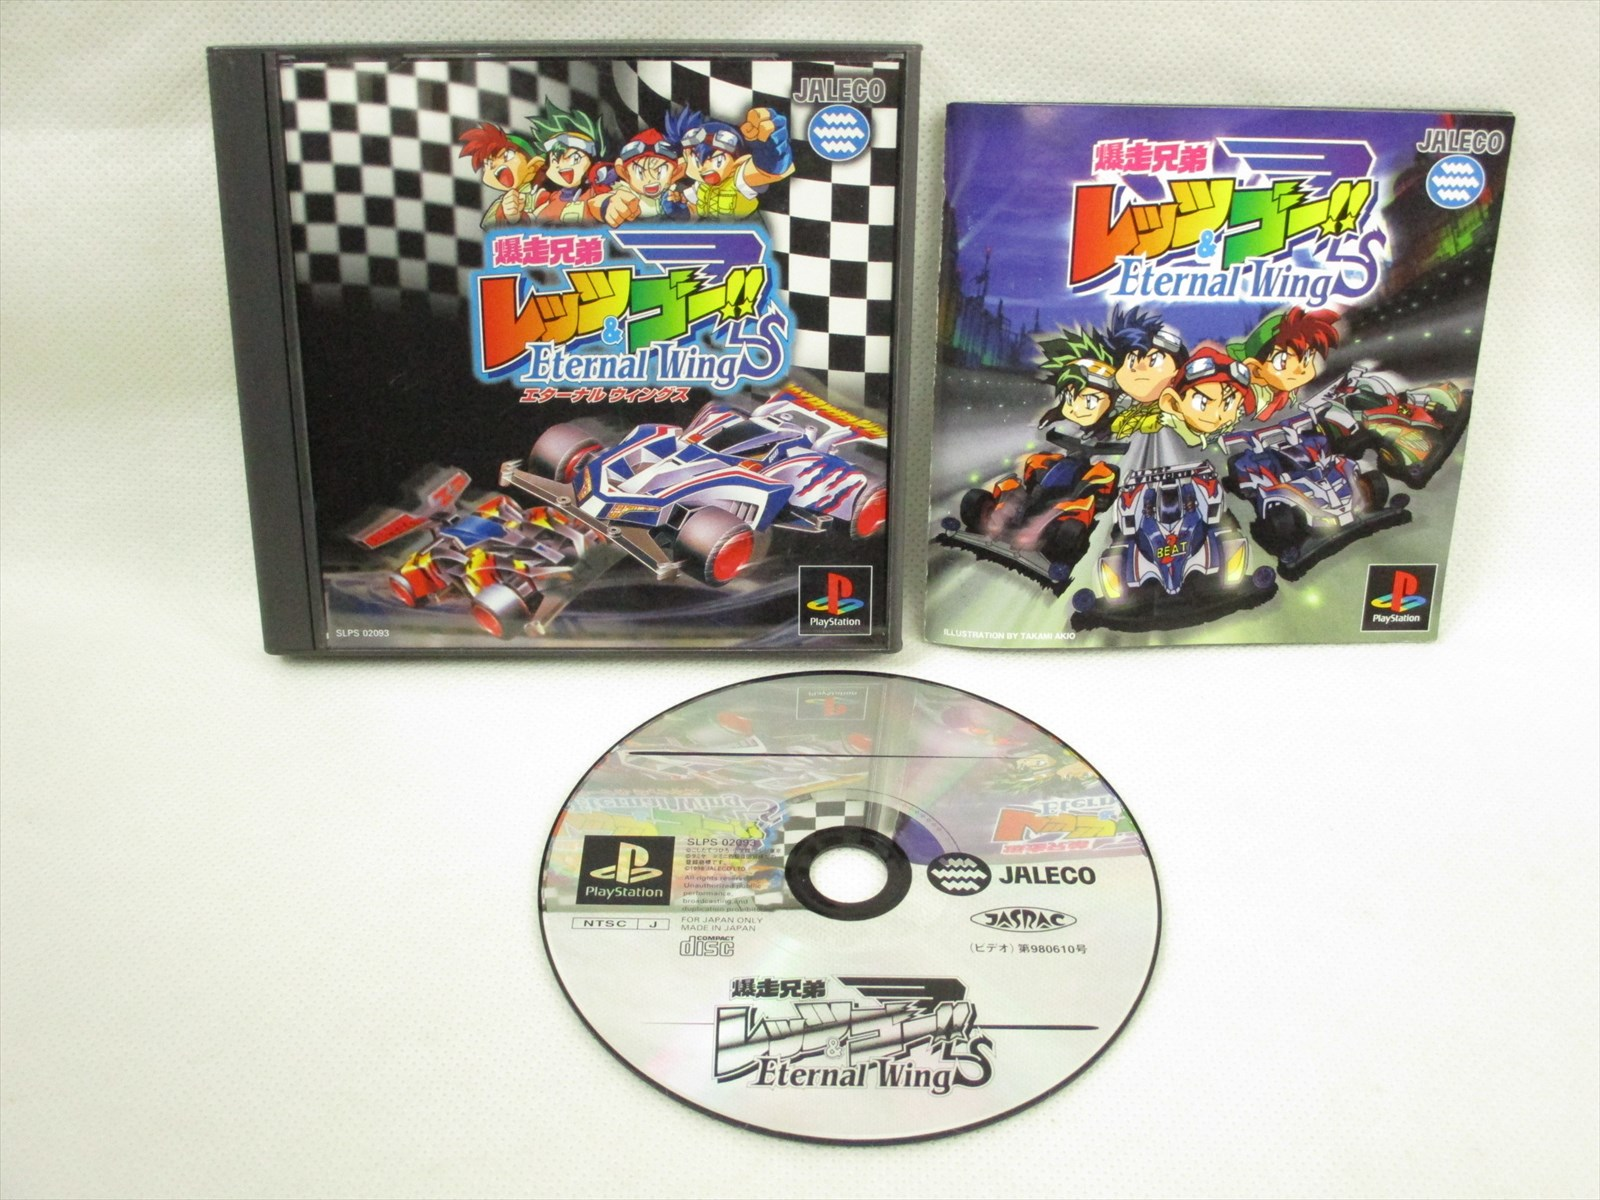 Details about BAKUSOU KYOUDAI LET'S GO & Eternal Wings The BEST PS1  Playstation Japan Game p1